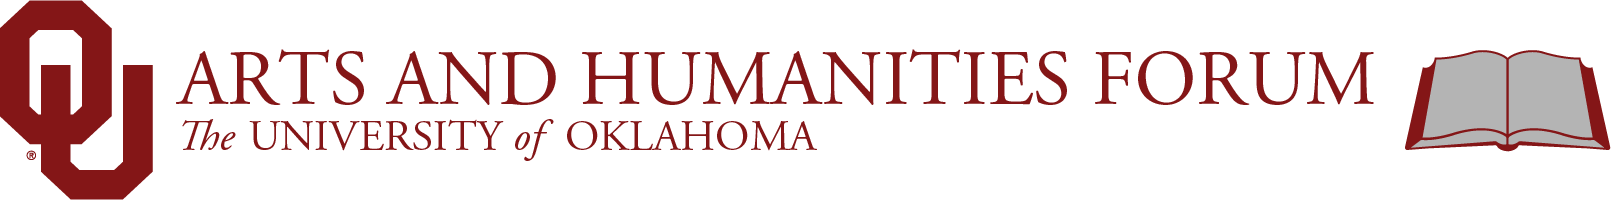 Humanities Forum, The University of Oklahoma website wordmark